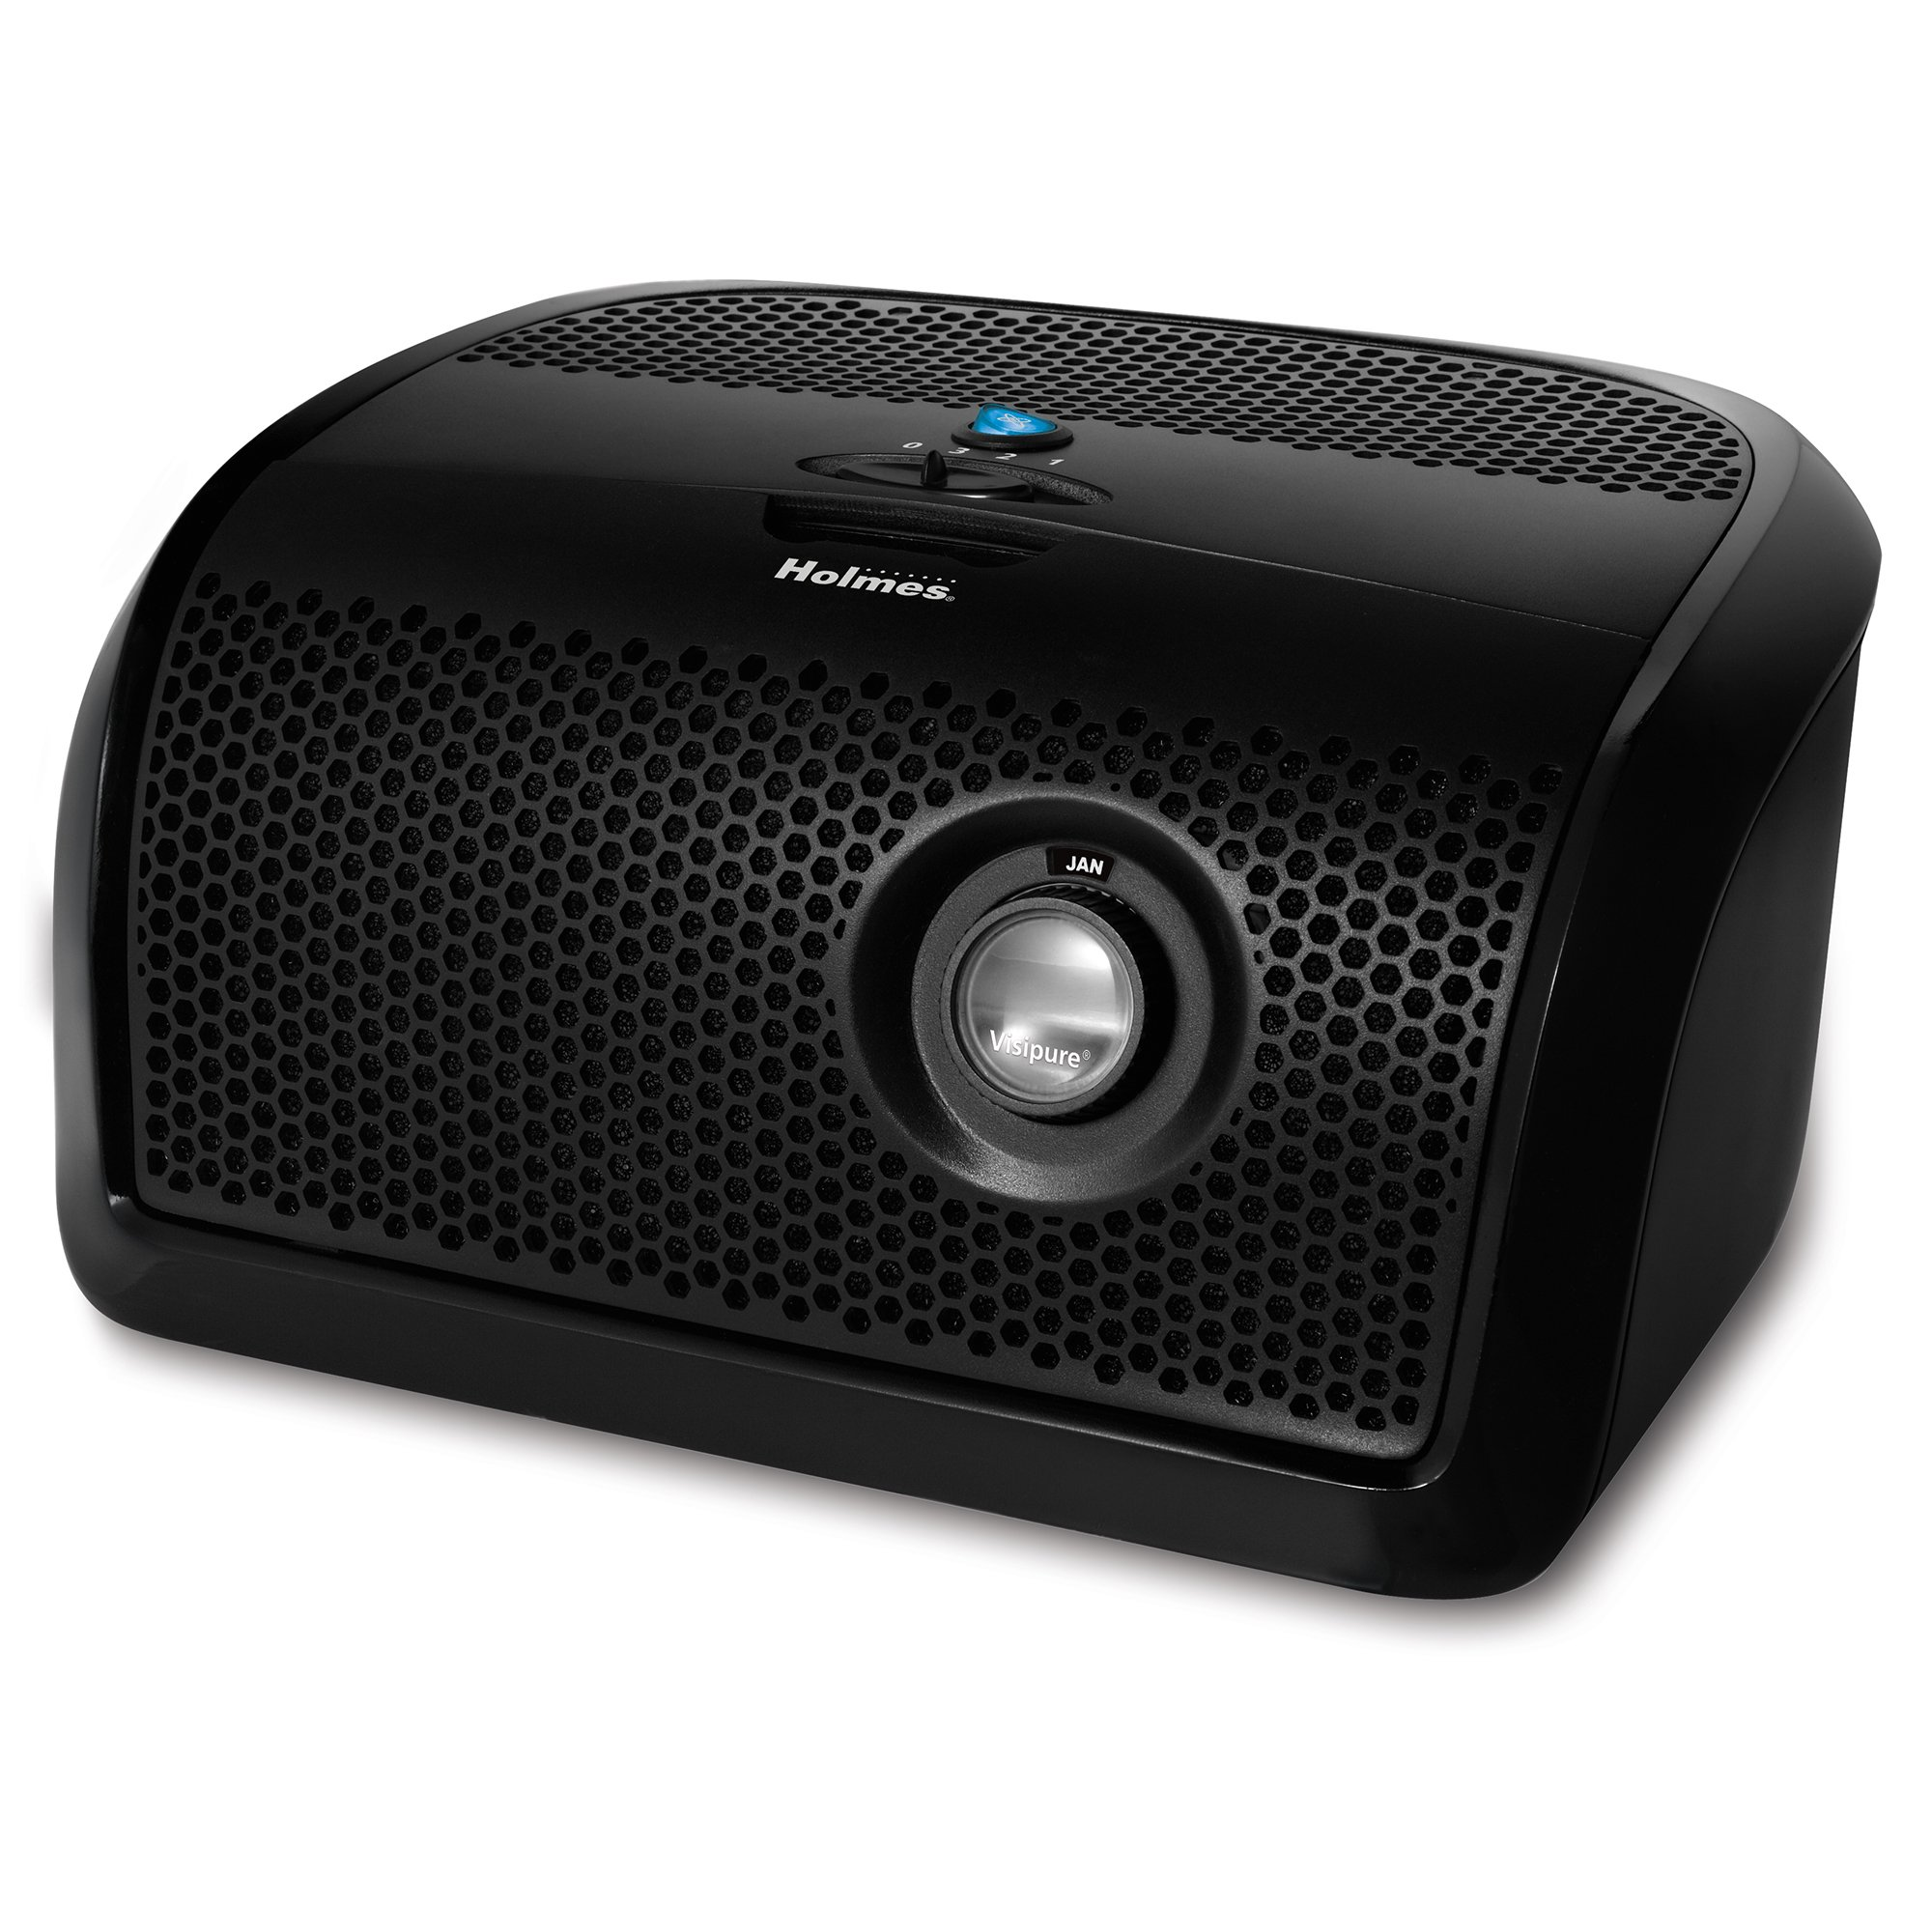 Review of Holmes Desktop HEPA Air Purifier with Visipure Filter Viewing Window